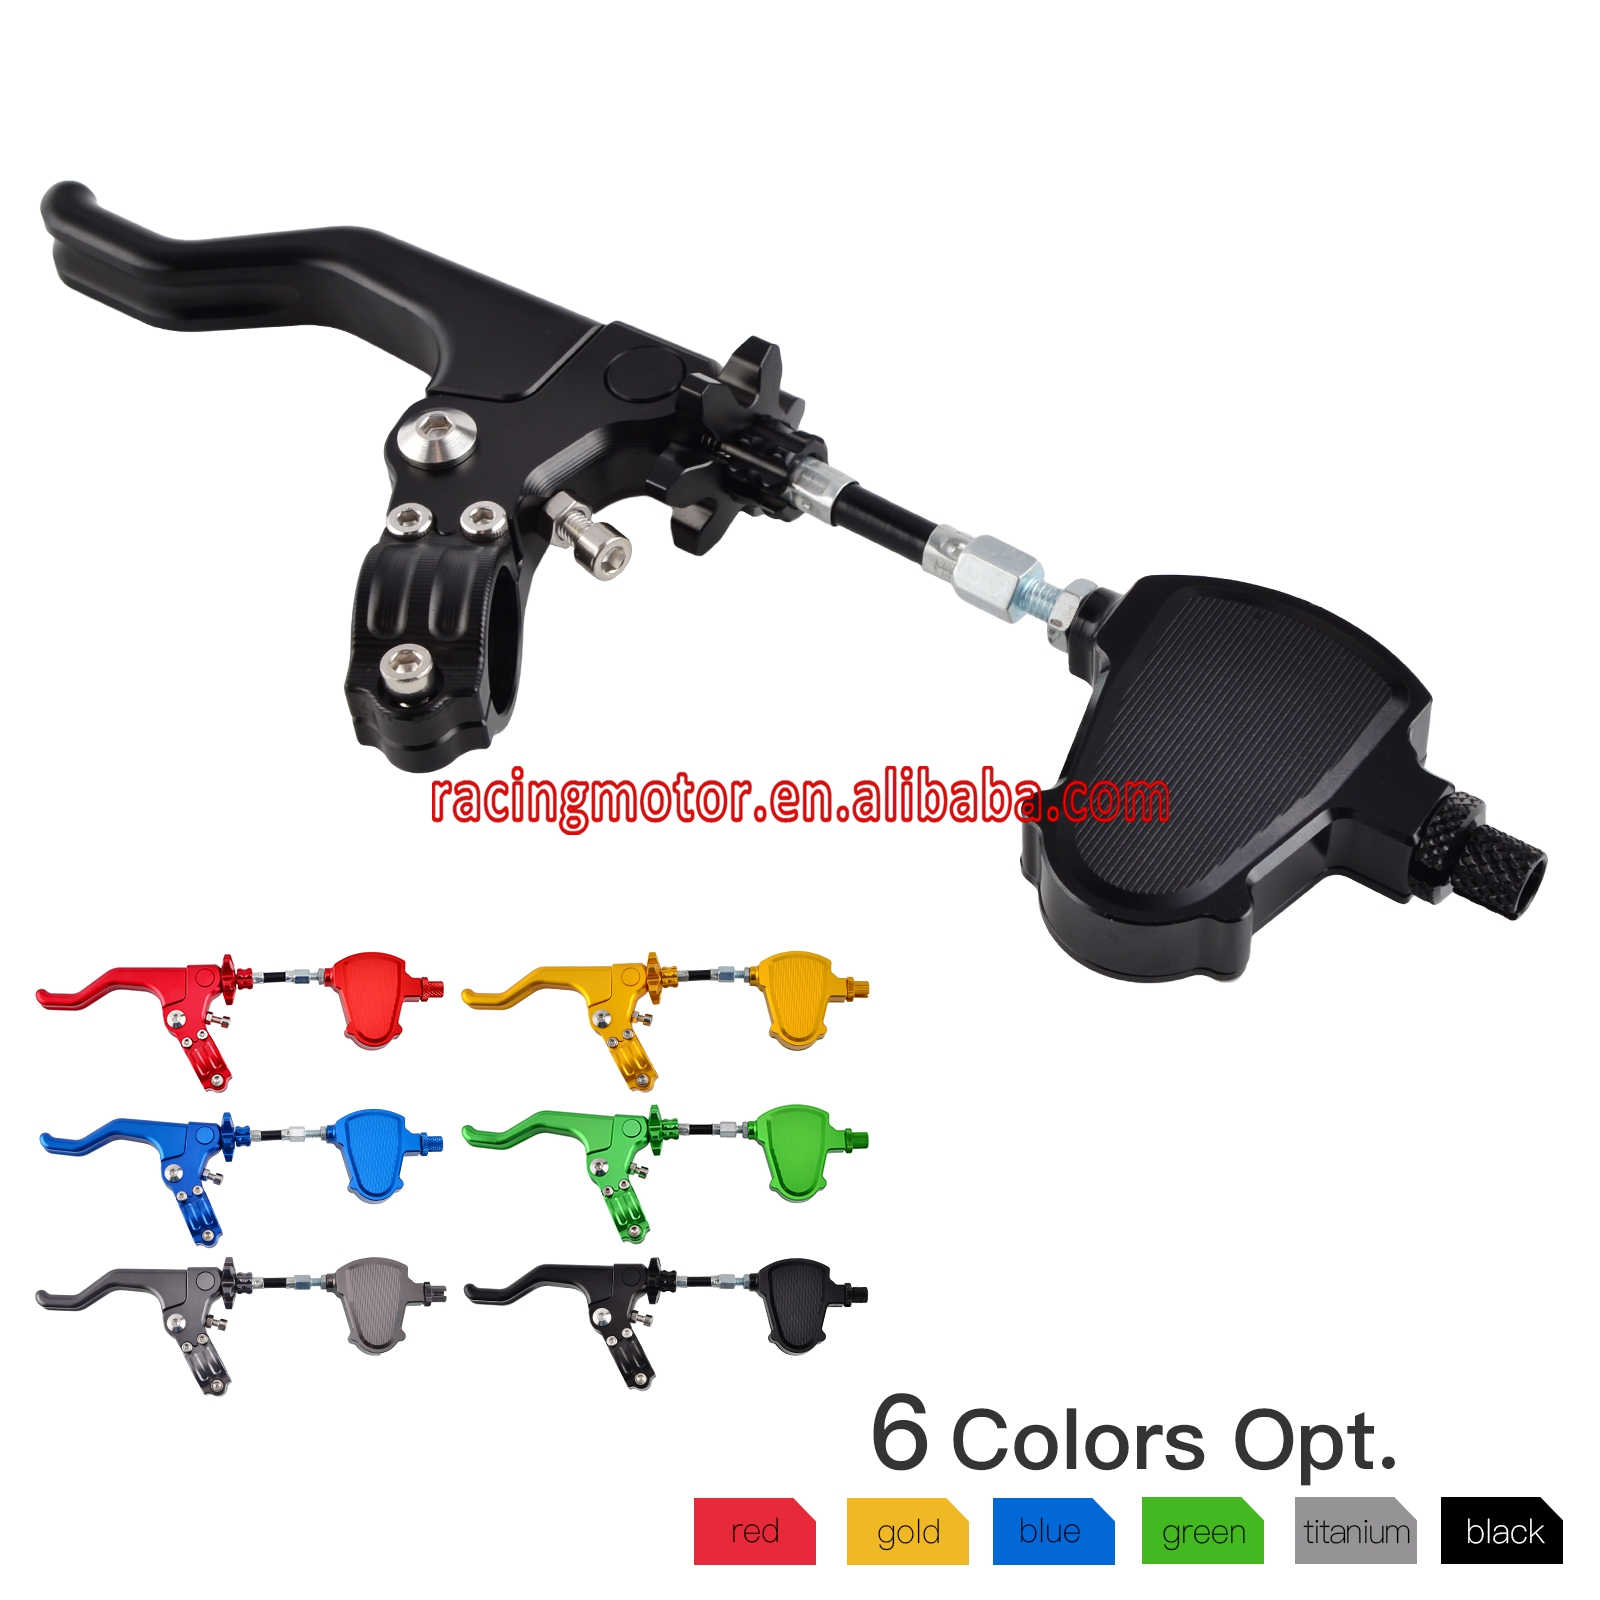 CNC Stunt Clutch Pull Cable Lever Easy System for Honda CR80R CR125R CR250R CRF250R CRF250X CRF450R CRF450X CRF250L CRF250M cnc offroad mx clutch brake levers for honda cr125r 04 07 cr250r crf250r 04 06 crf450r 04 06 crf250x 04 16 crf450x 05 16